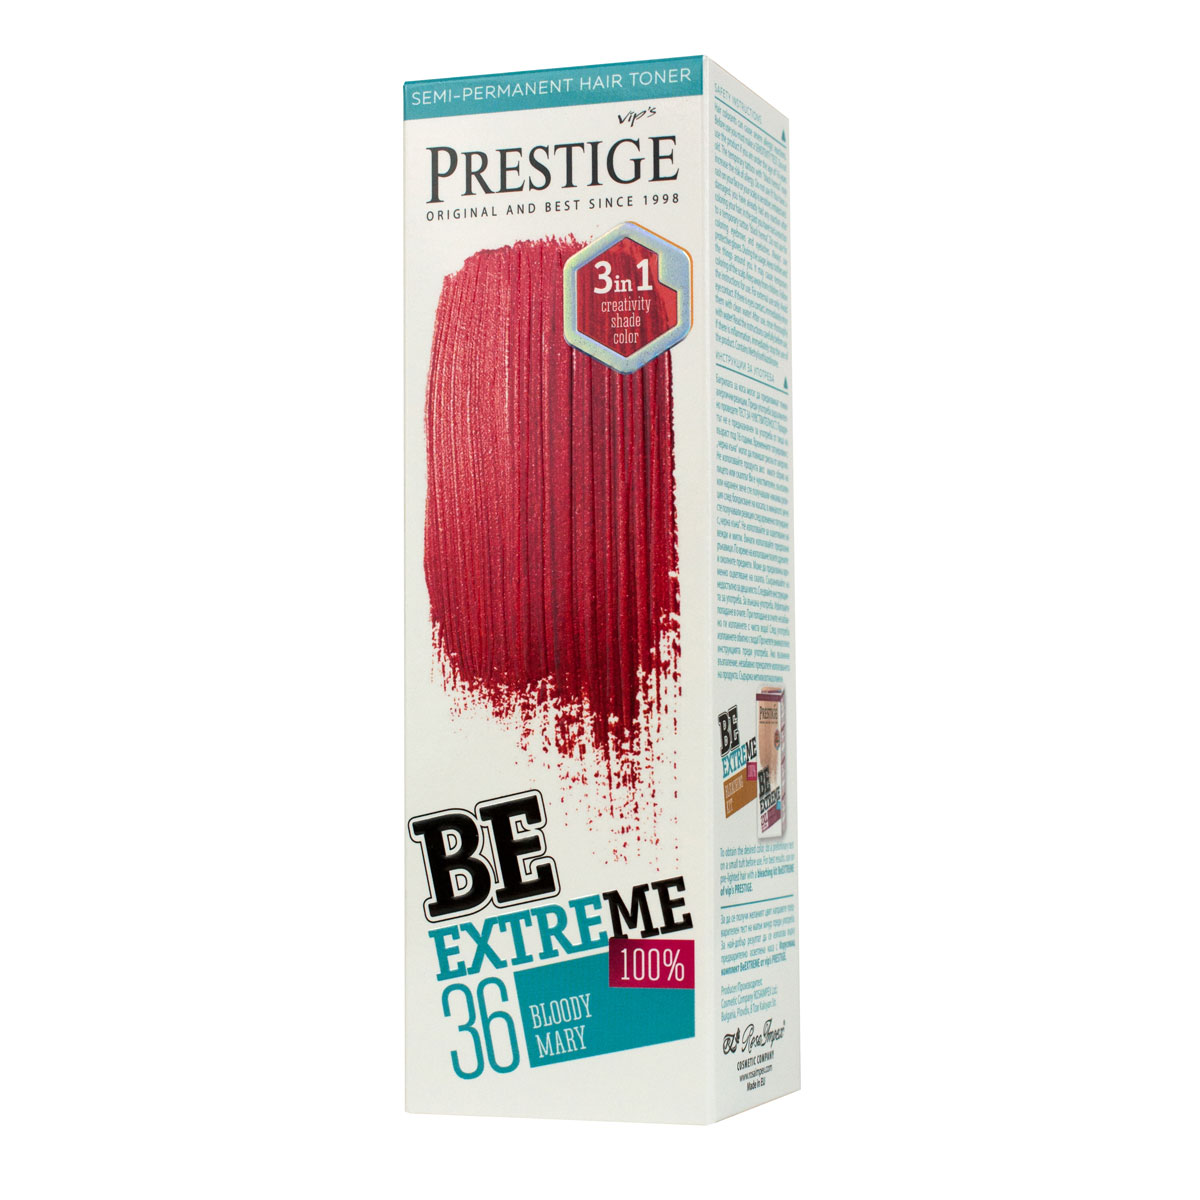 BE EXTREME HAIR TONER BR 36 BLOODY MARY